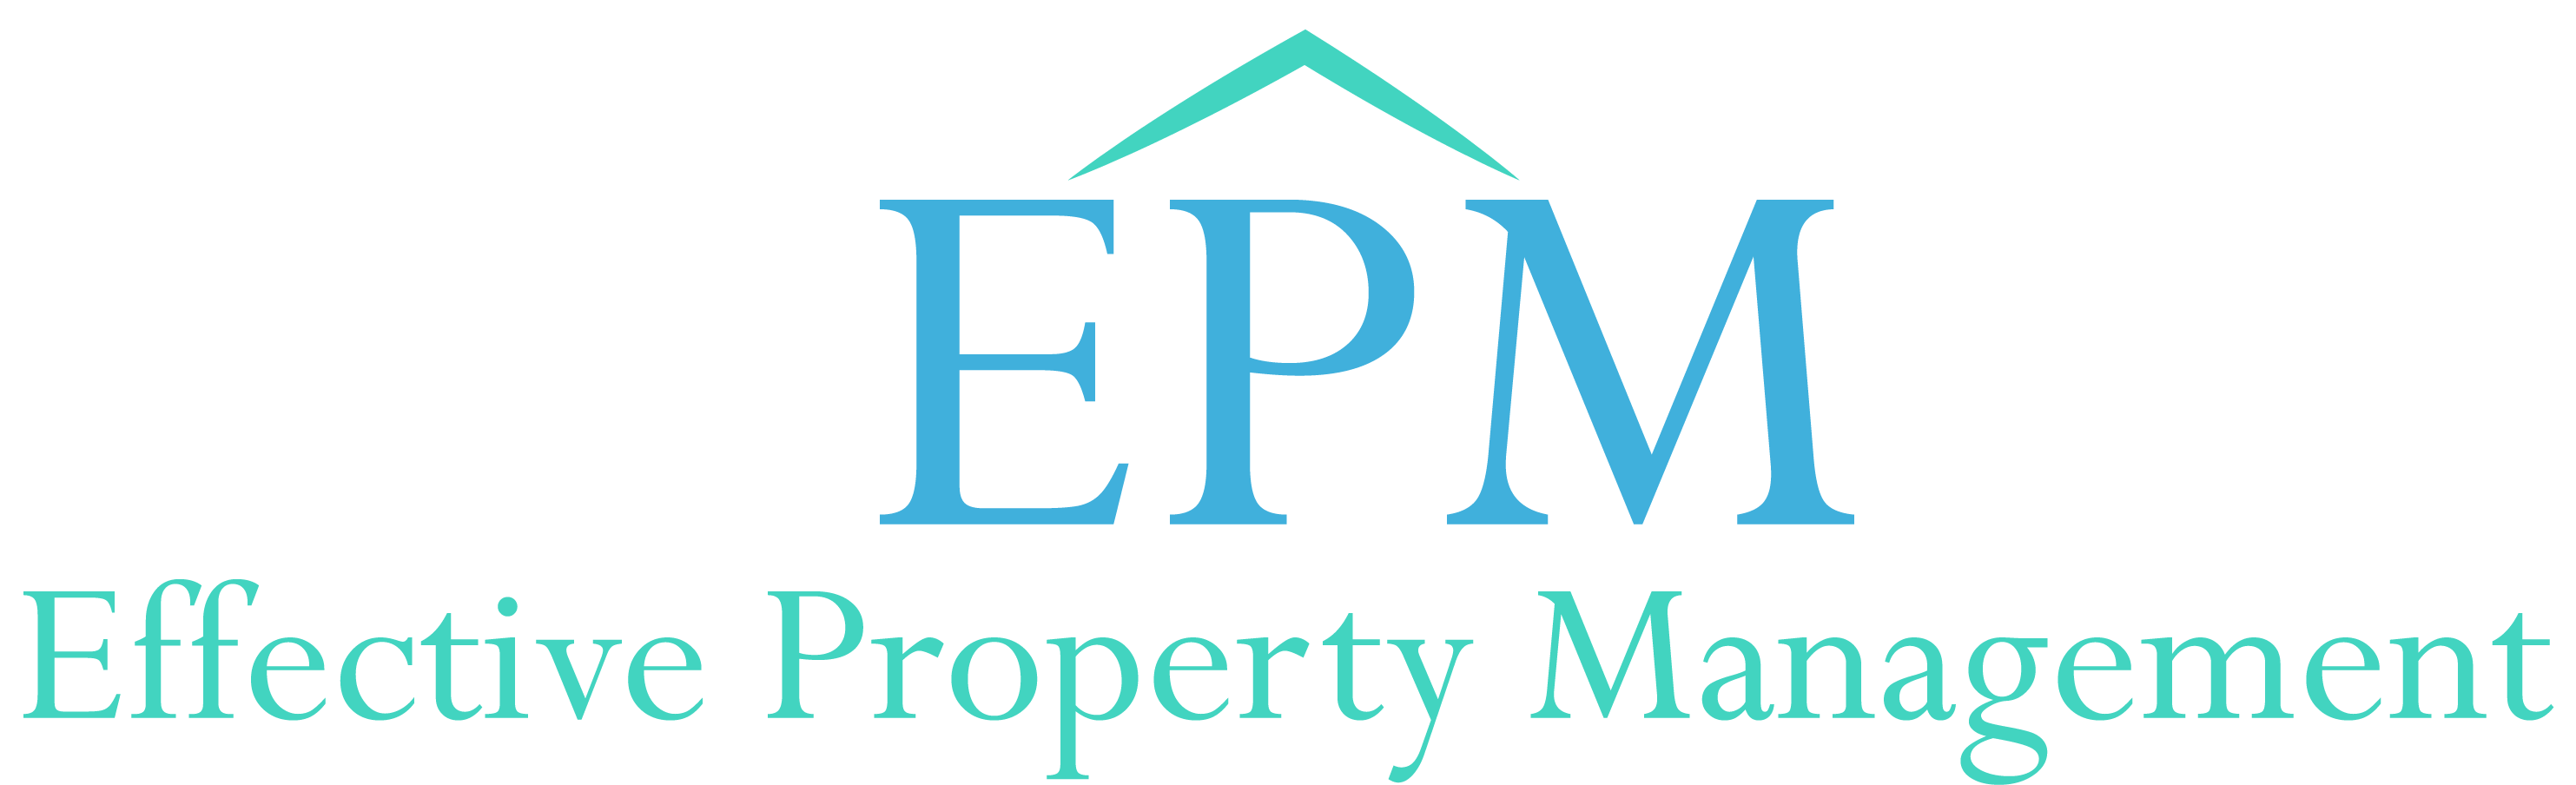 Effective Property Management: Online Courses